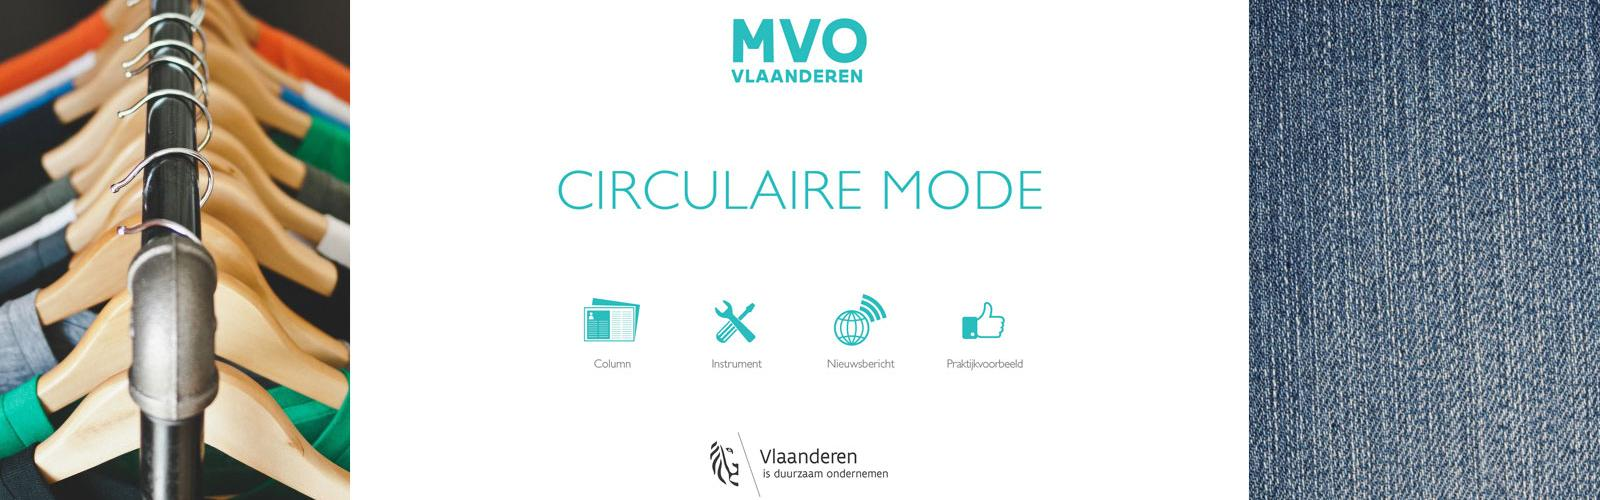 Coverbeeld themabundel circulaire mode